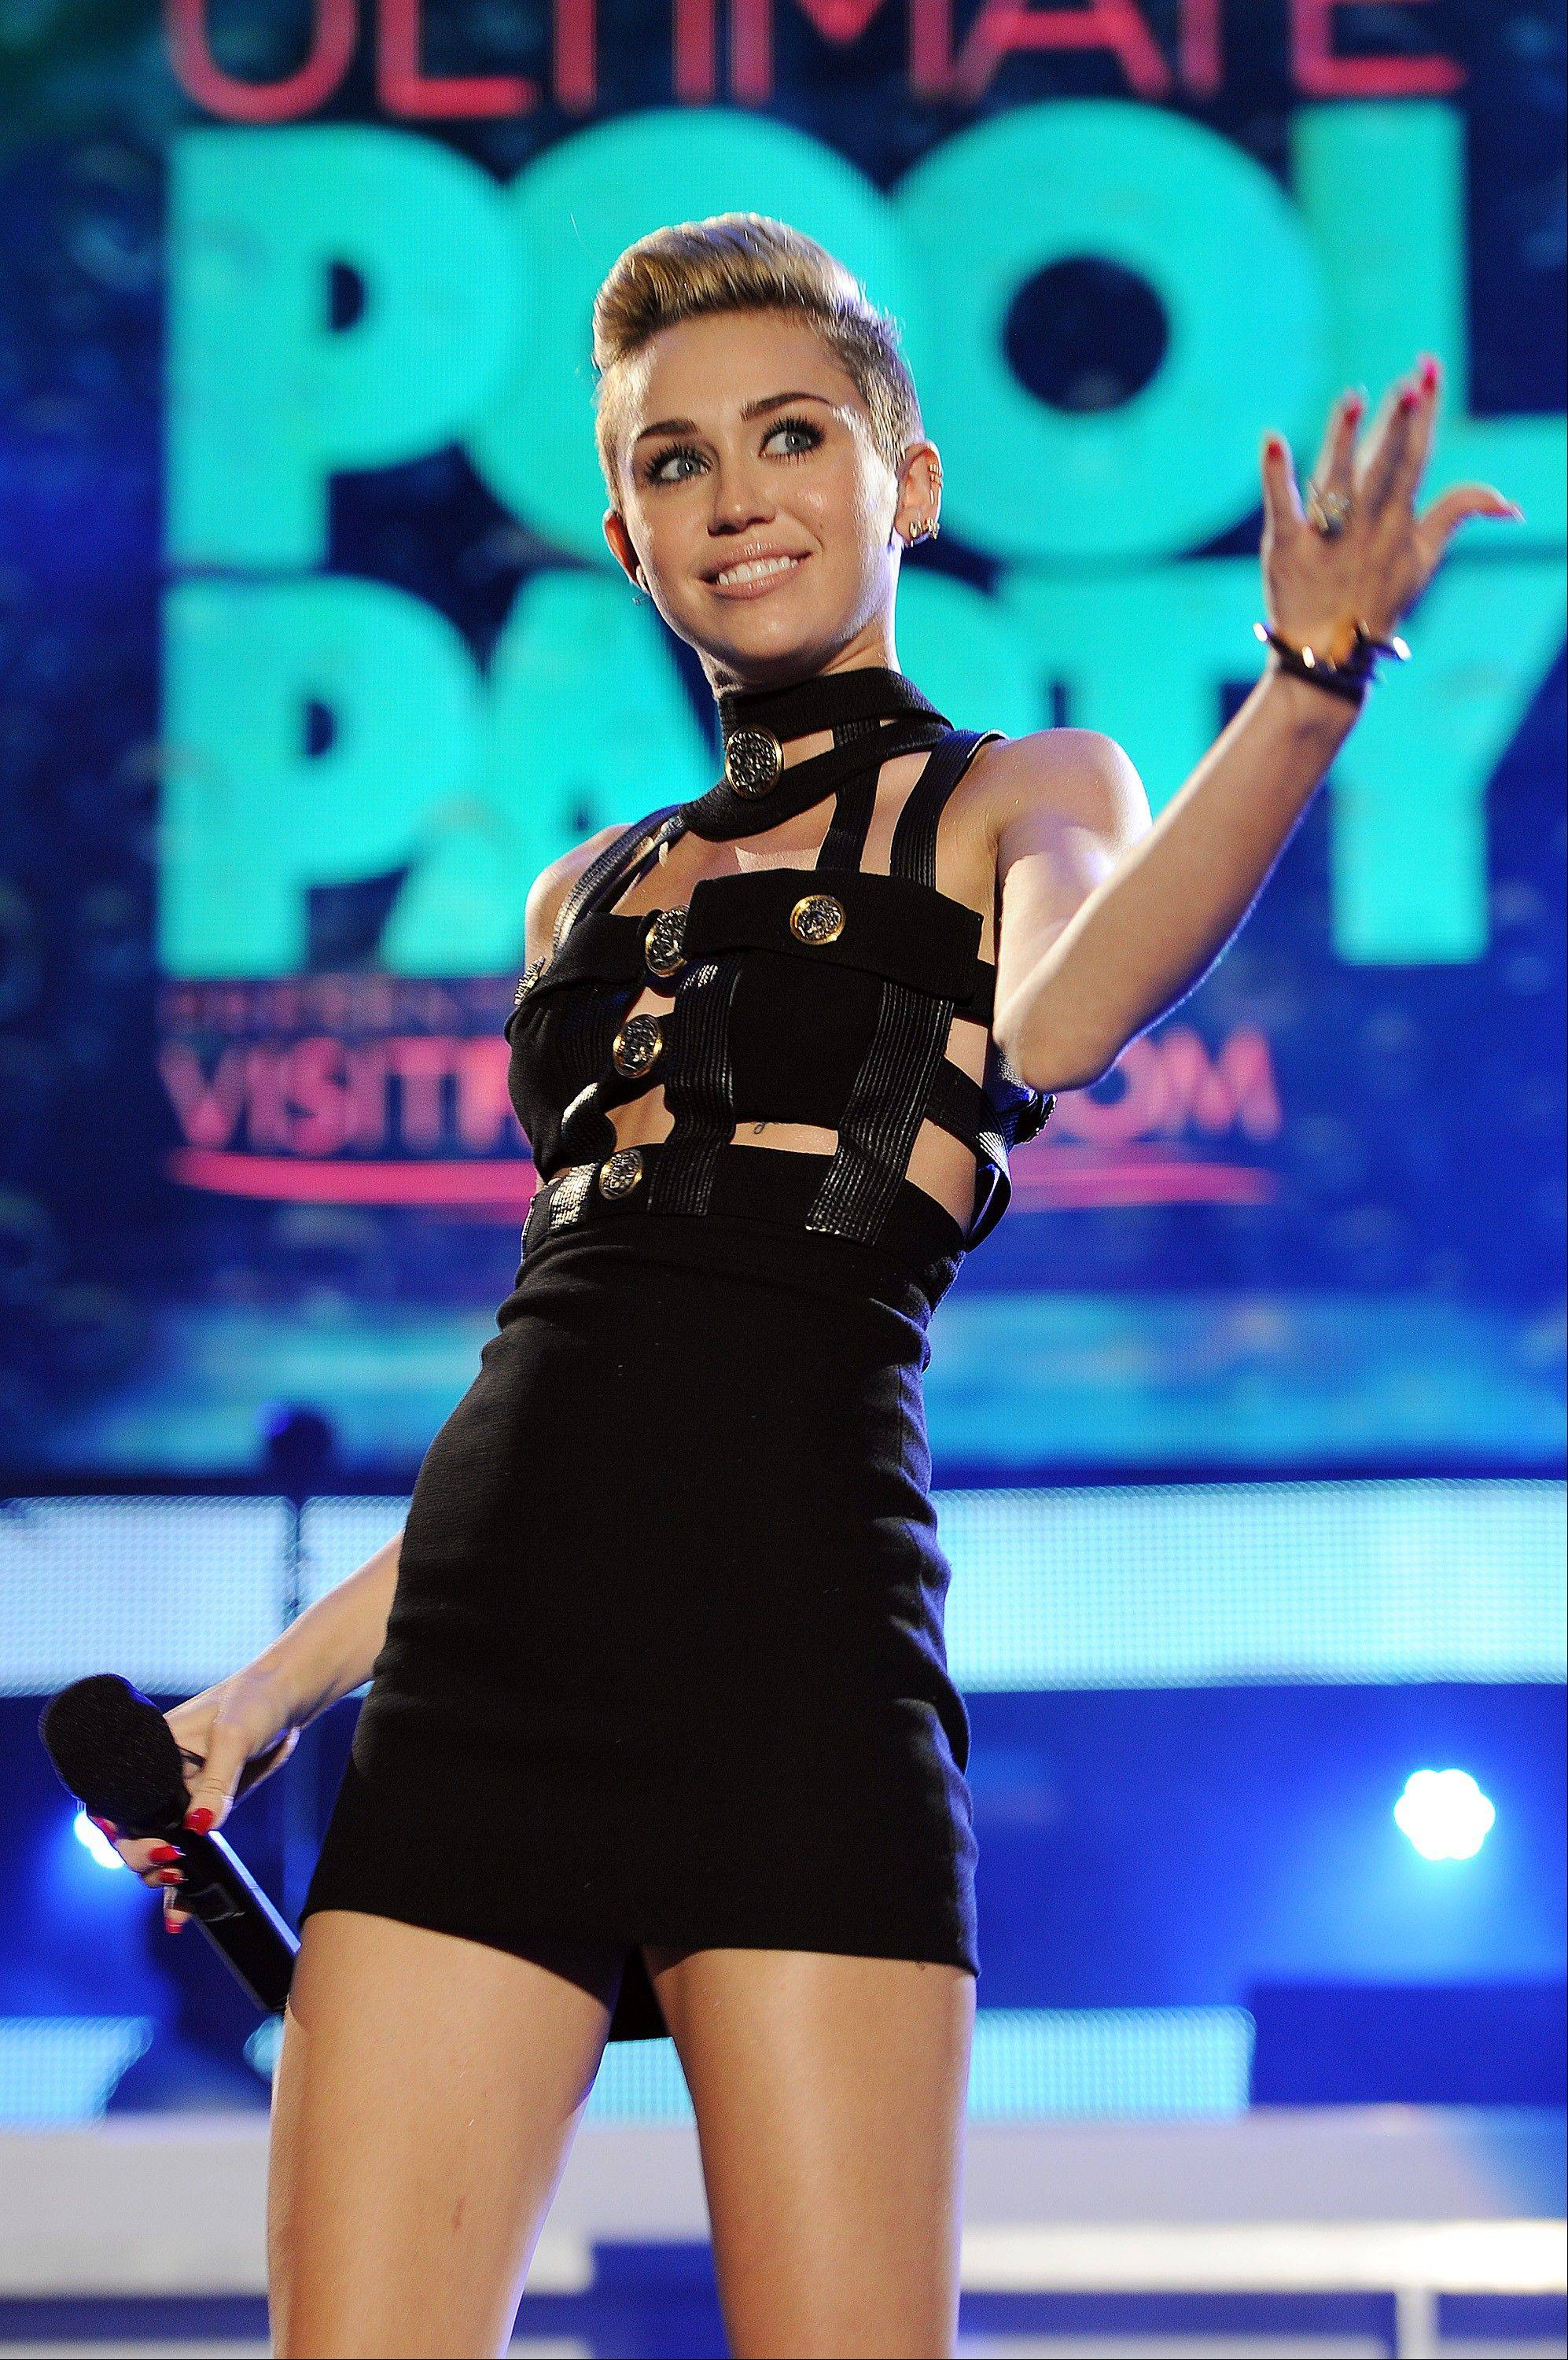 This June 29, 2013 file photo shows Miley Cyrus hosting the iHeartRadio Ultimate Pool Party at the Fontainebleau Hotel in Miami. It must be mentioned that Miley Cyrus embodied more than one fashion trend this year. Is Cyrus becoming a fashion icon? Not by the standard definition. But heading into 2014 she was one of the most-watched people on the planet.